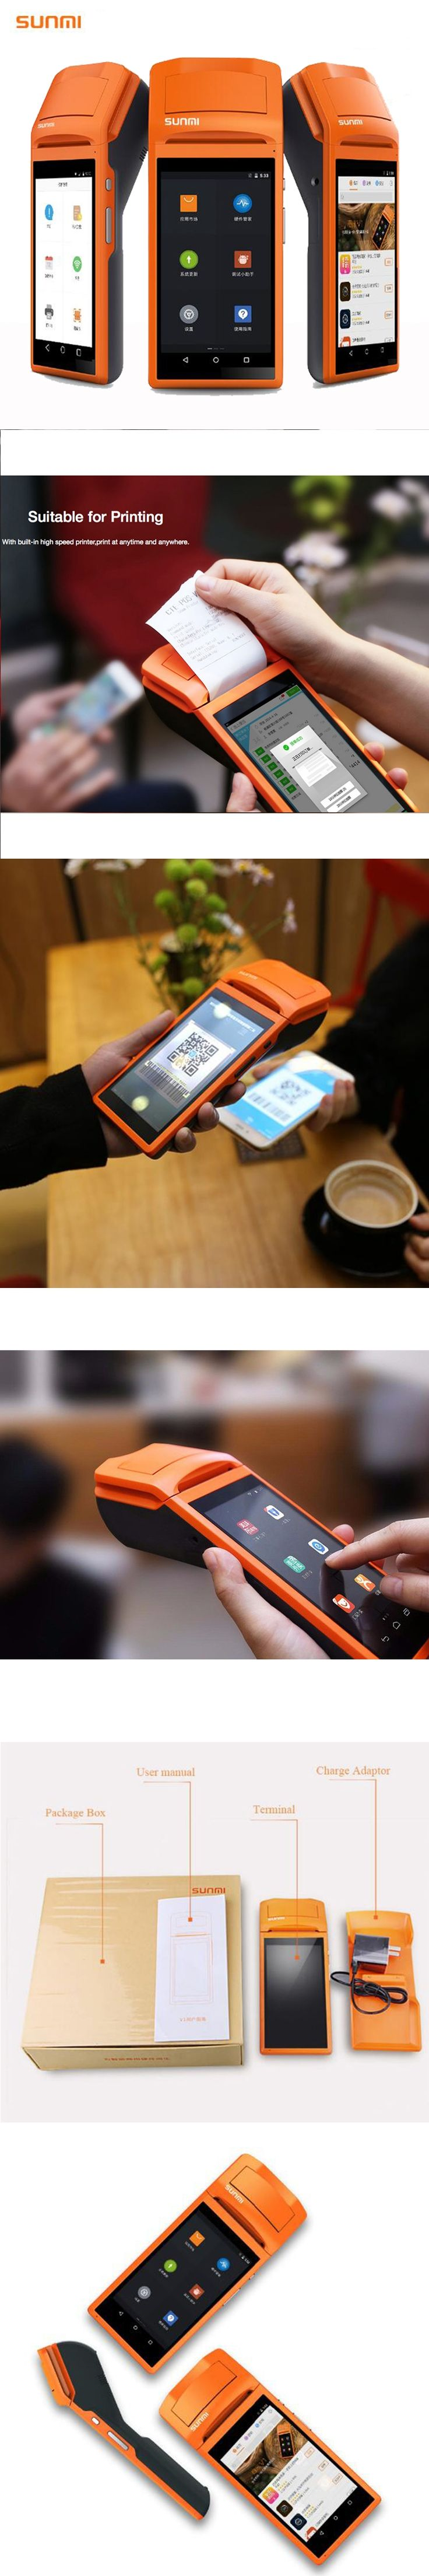 "5.5"" Display Wifi /3G/Bluetooth Handheld Mini Android Pos Terminal with Thermal Printer Barcode Scanner"